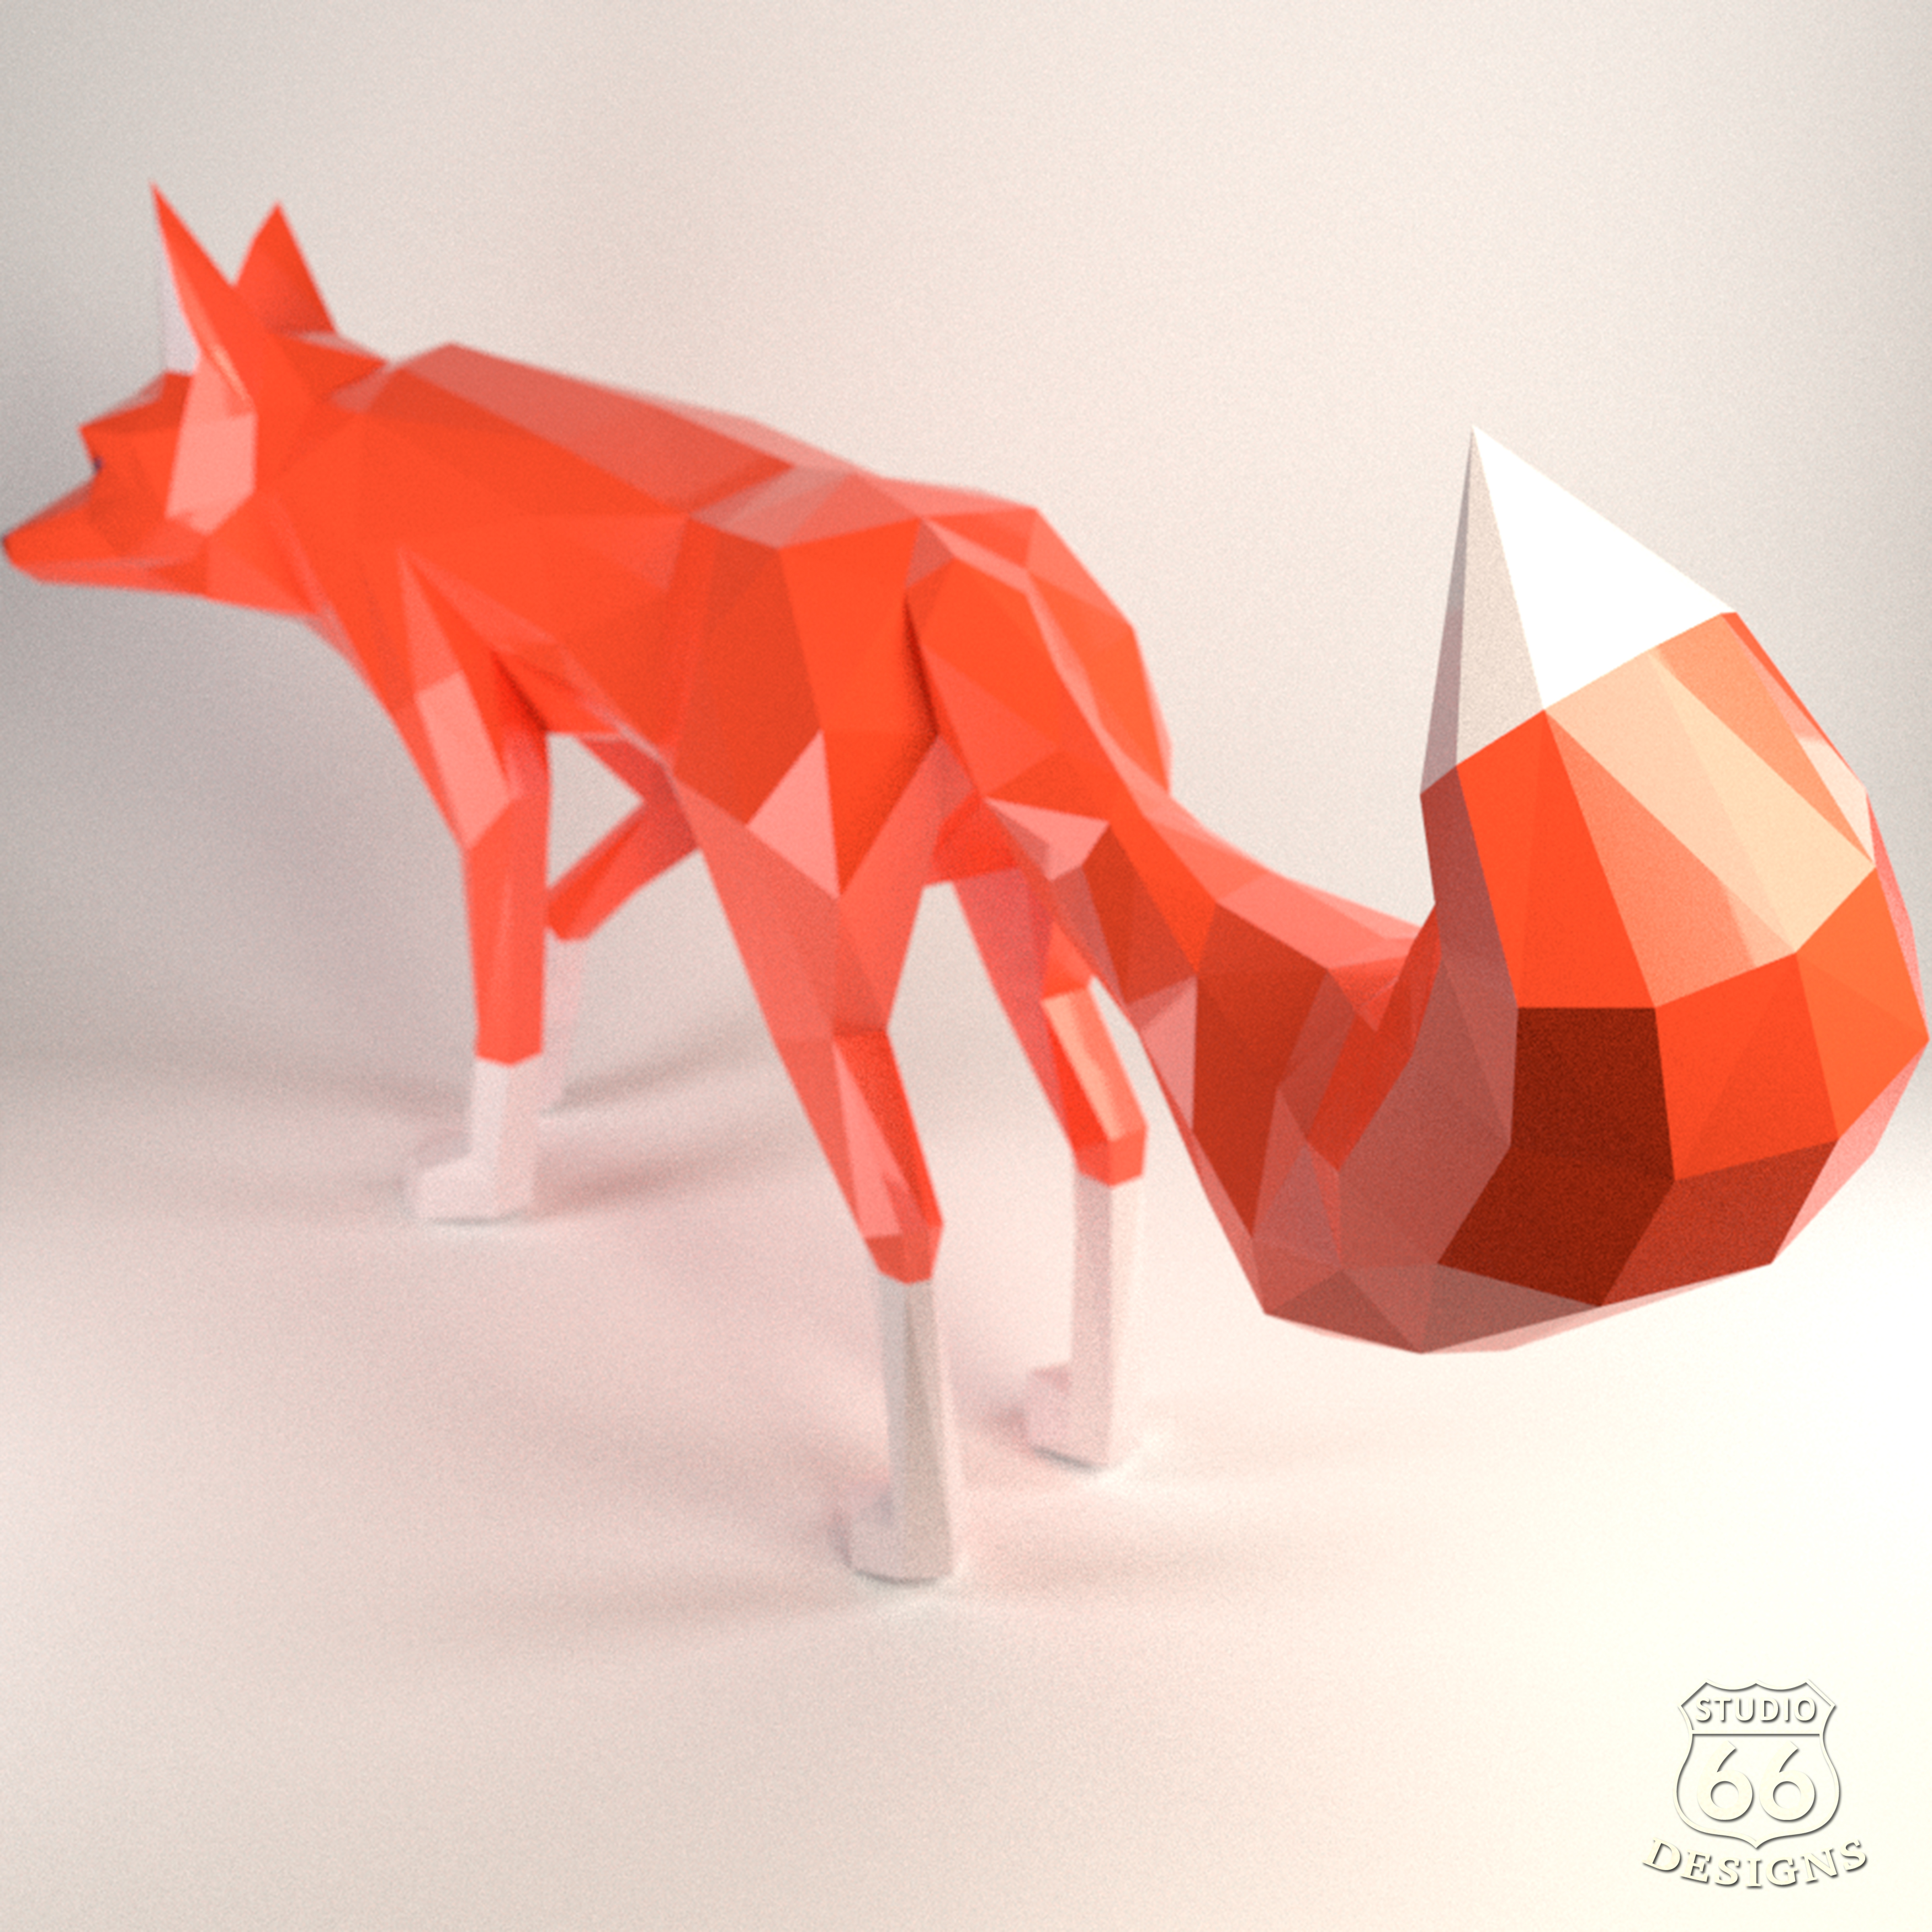 DIY Fox Papercraft, Red Fox, Fox Tail, Fox and Dogs, Fox Sculpture, Animal Trophy, Paper Animals, Home Decor, 3D origami, wild nature, foxy example image 3